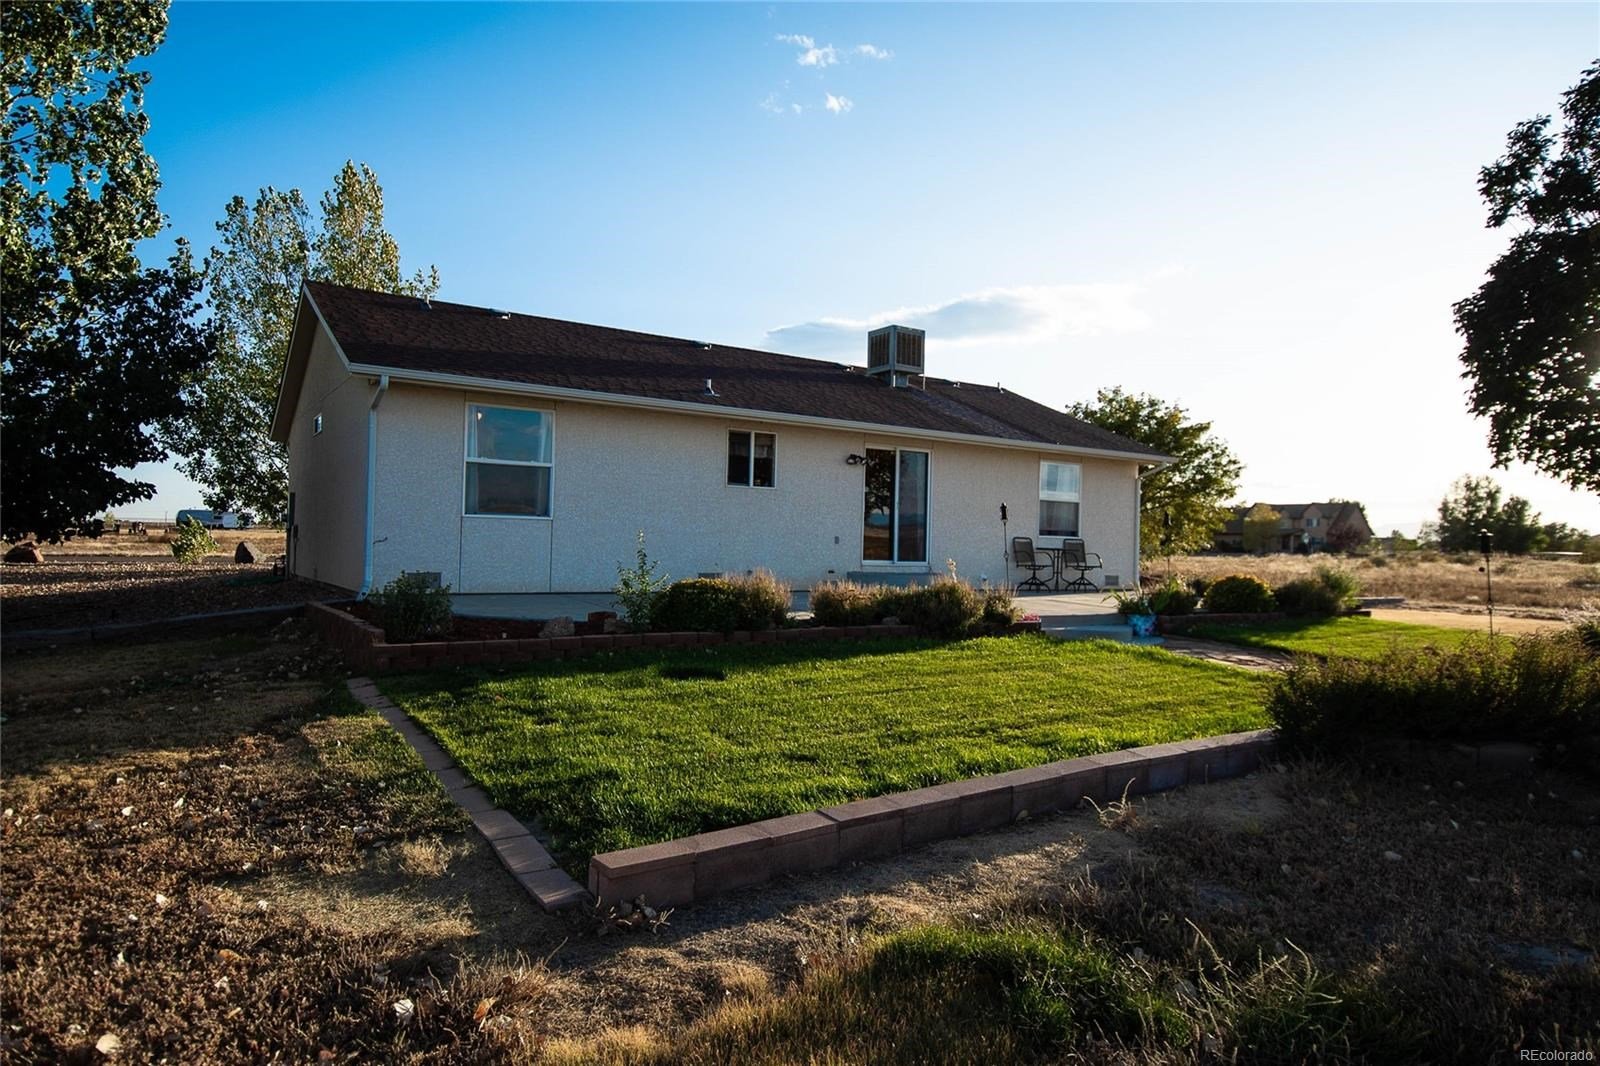 MLS# 2303742 - 5 - 221 W Bywood Drive, Pueblo West, CO 81007